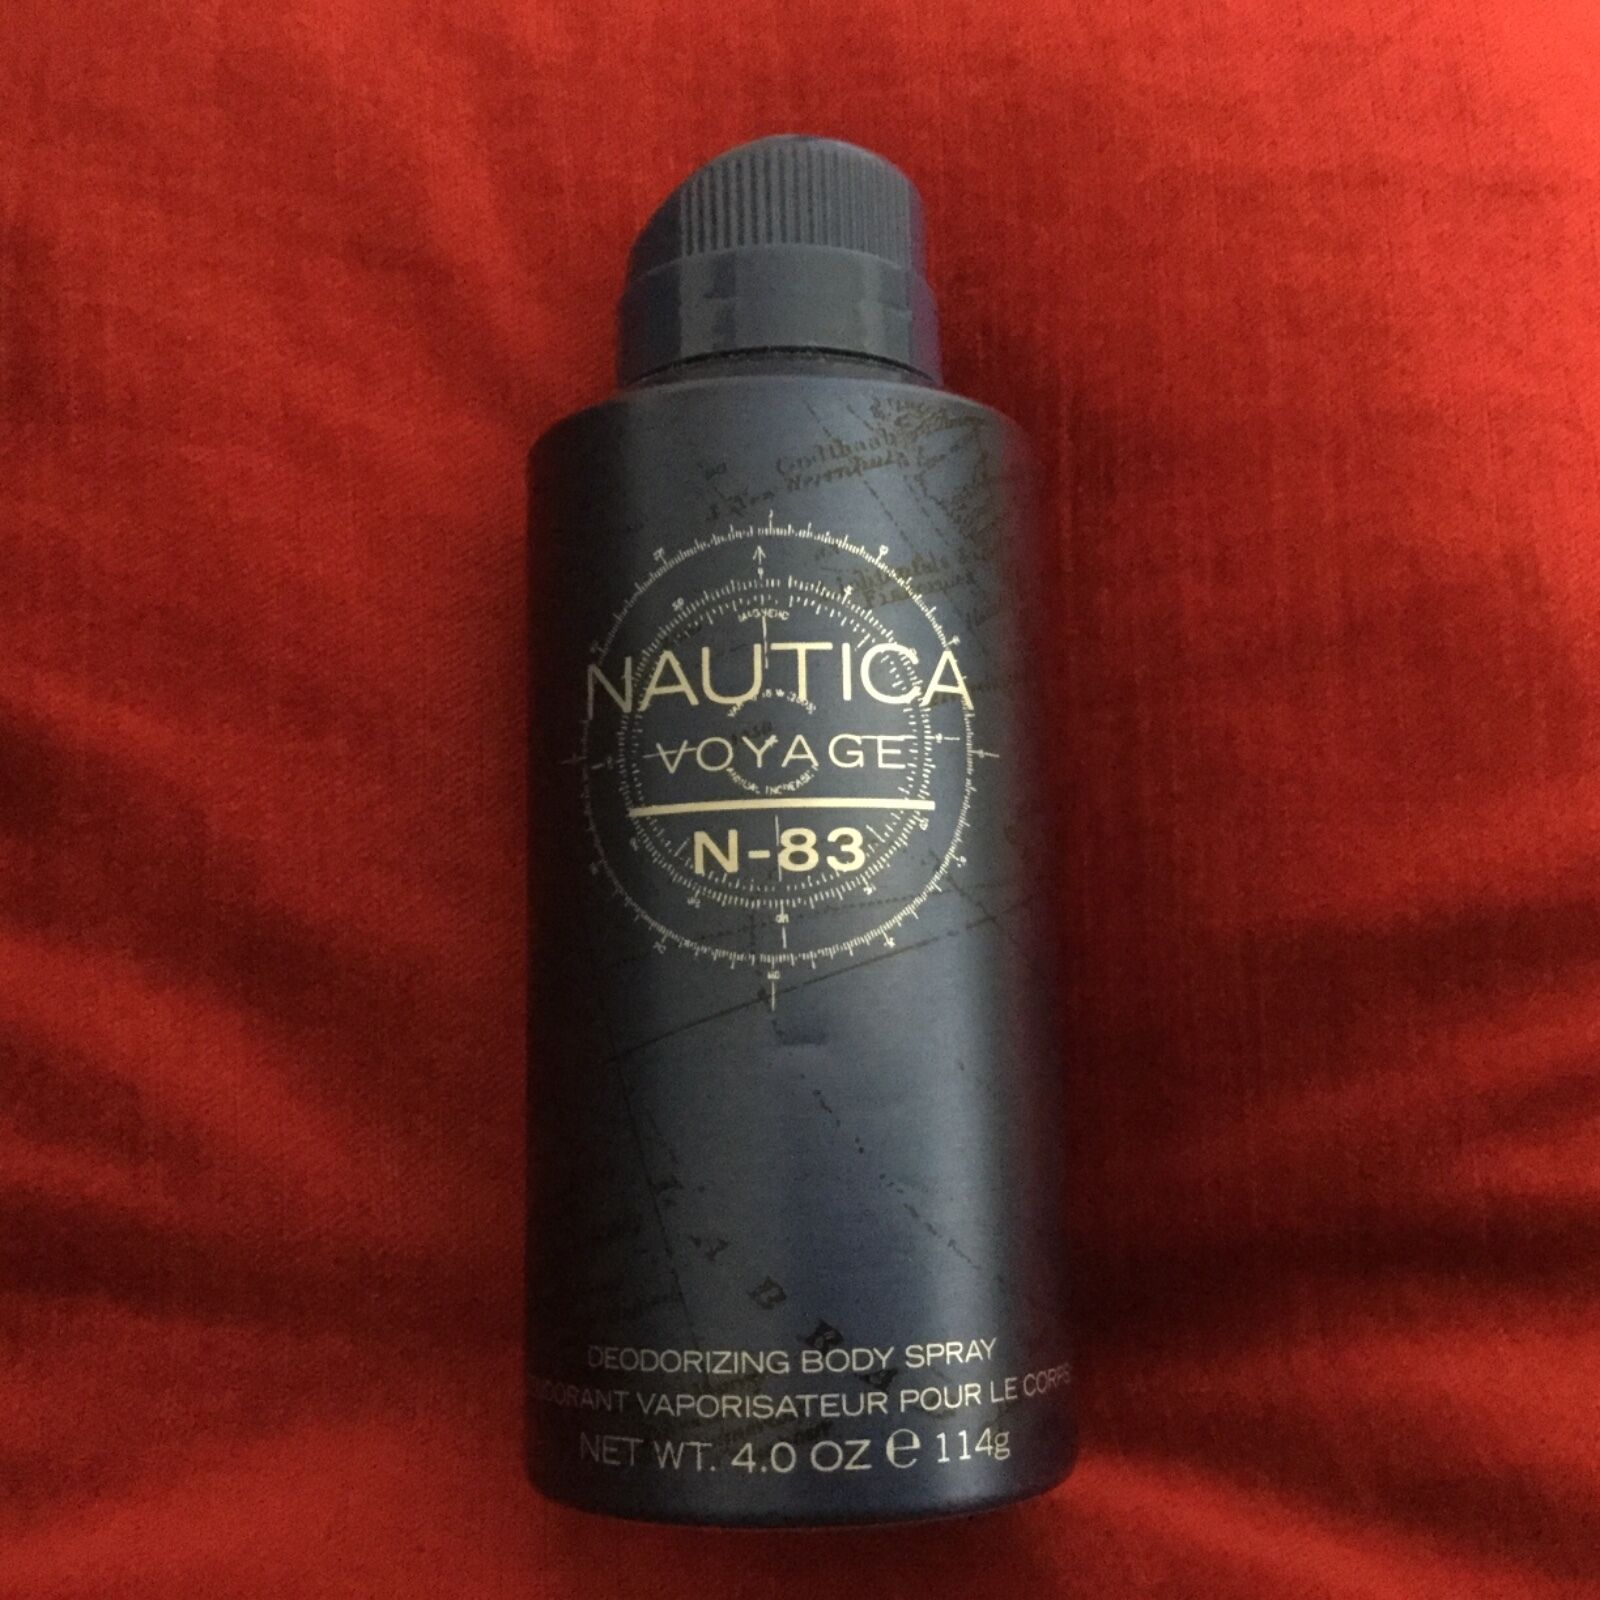 Nautica Voyage N-83 Body Spray 4 oz. New!